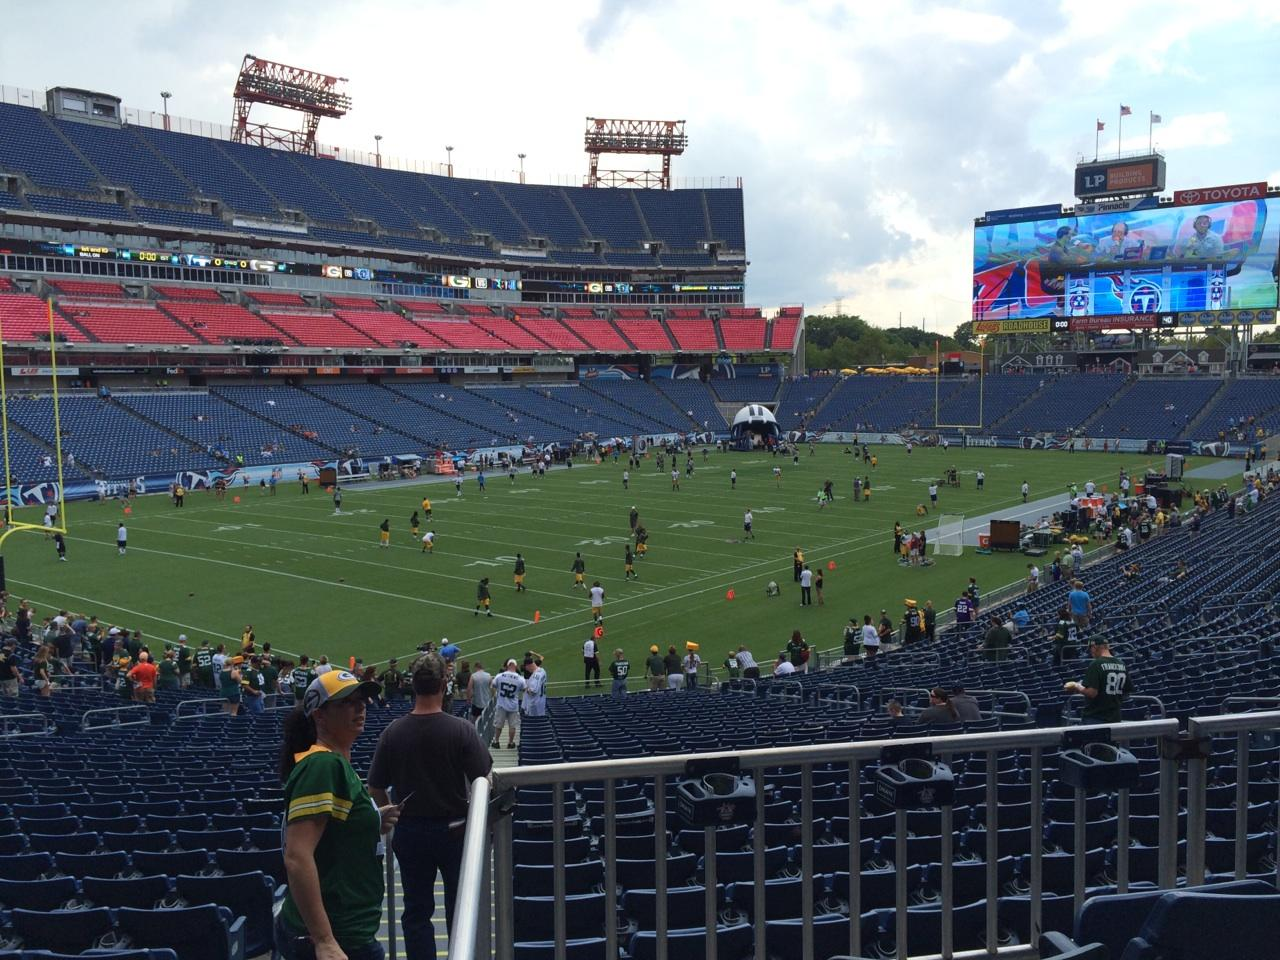 View From Section 118, Row HH, Seat 12